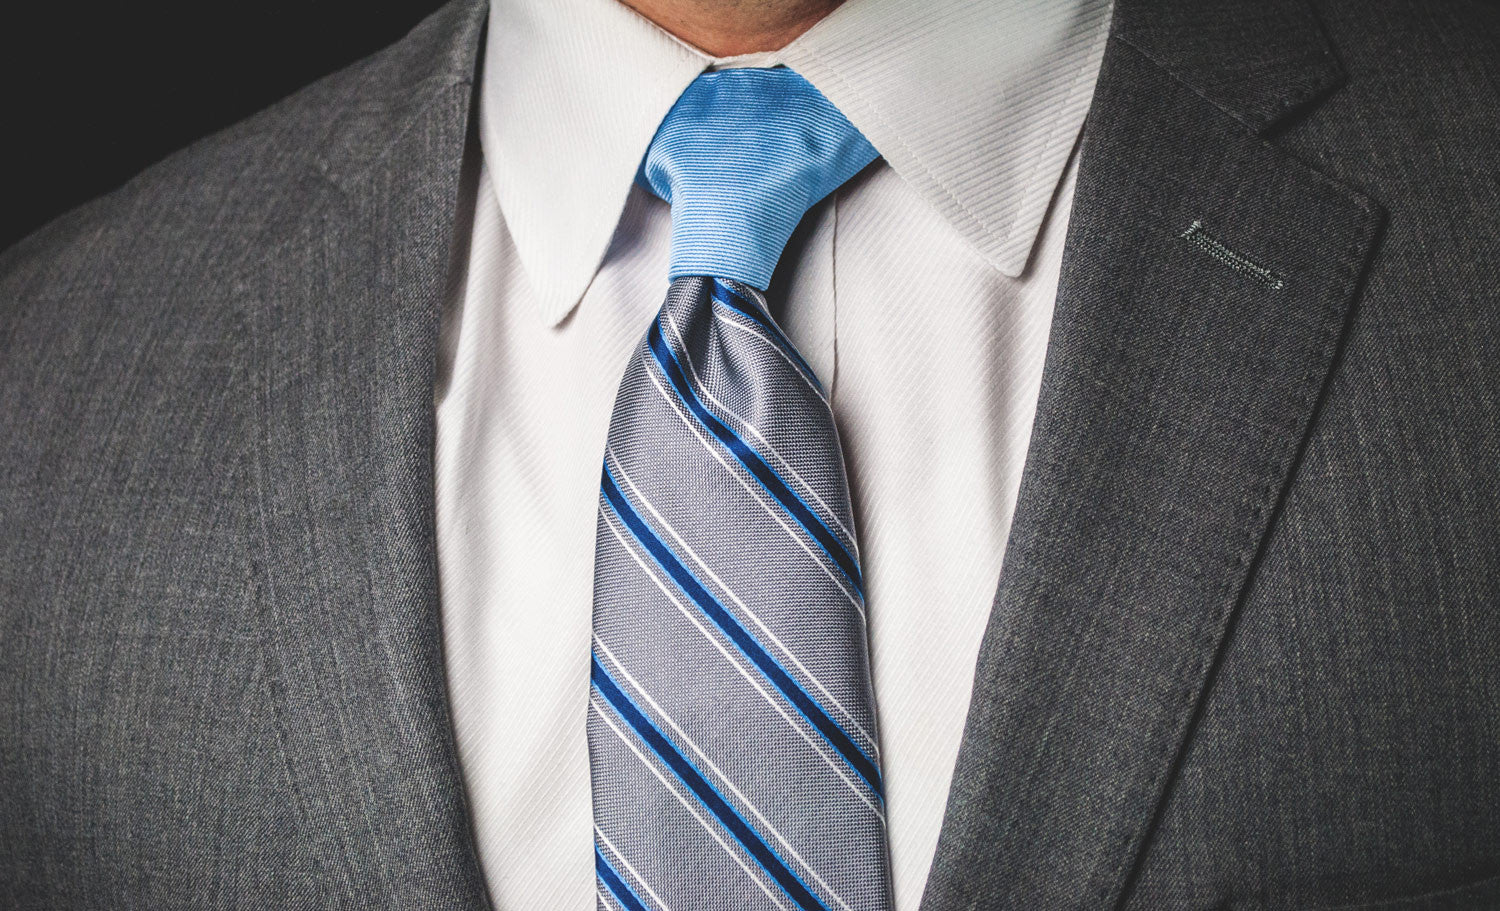 The Light Blue Proper Knot™